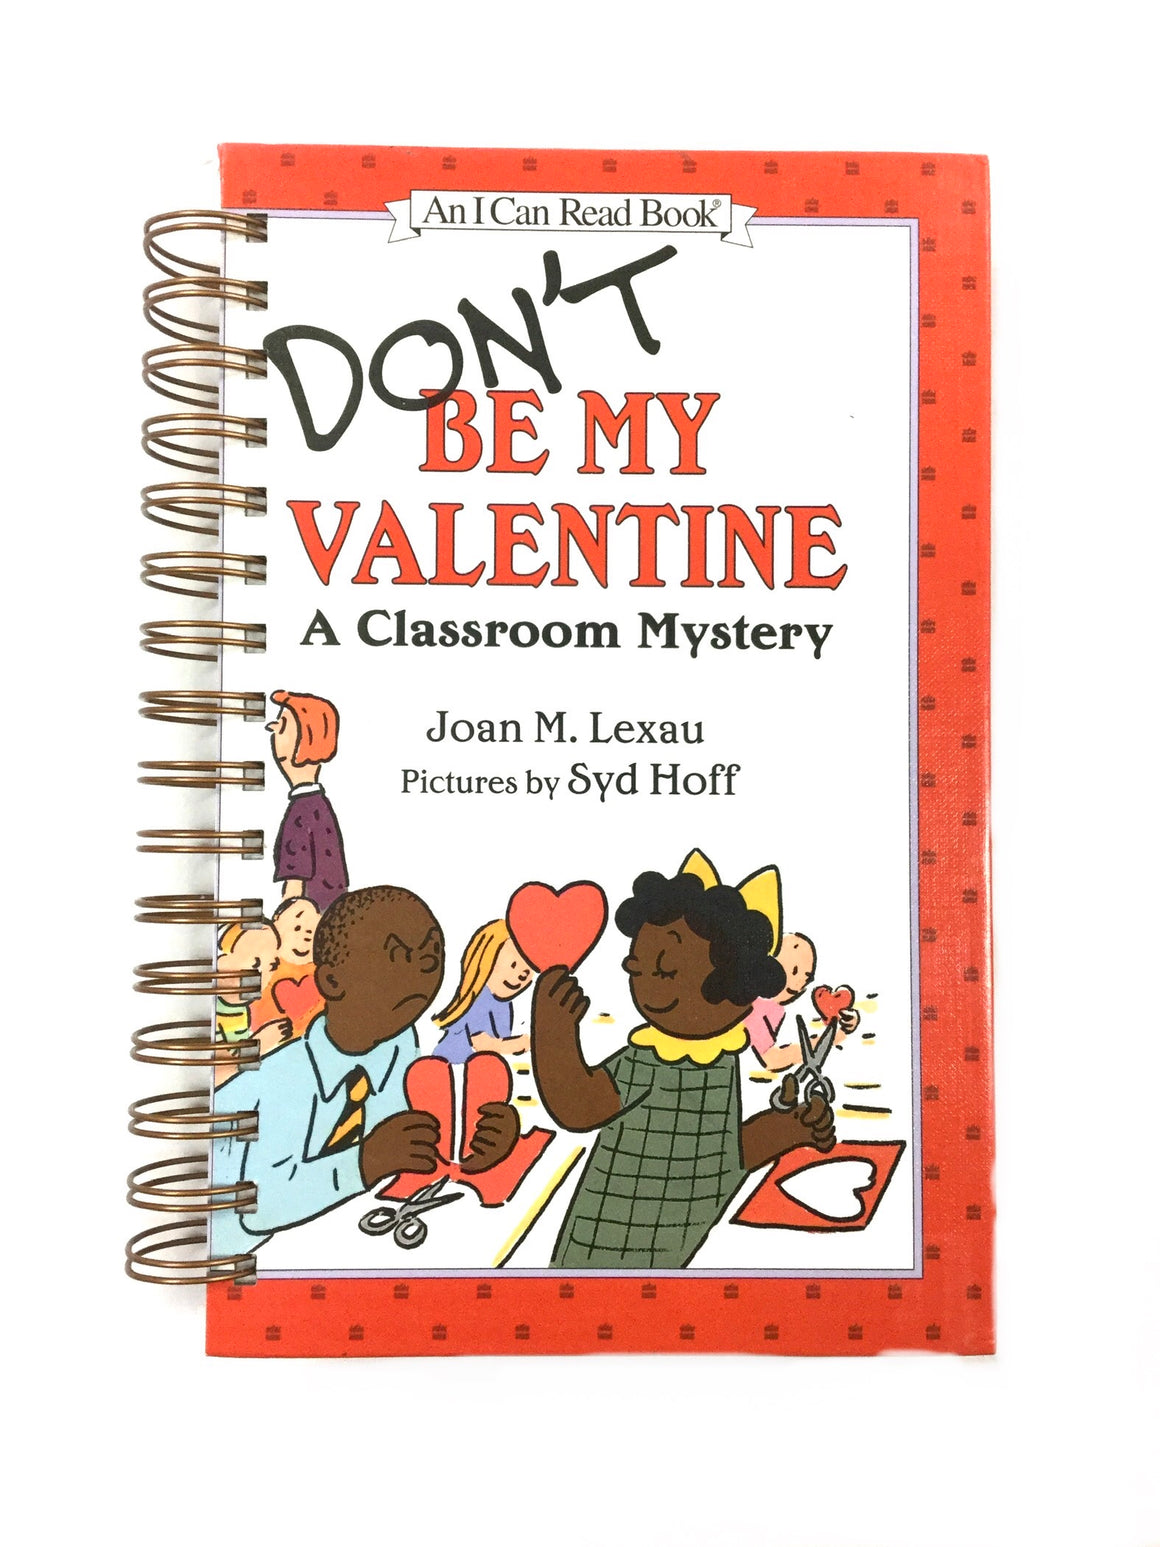 Don't be my Valentine-Red Barn Collections